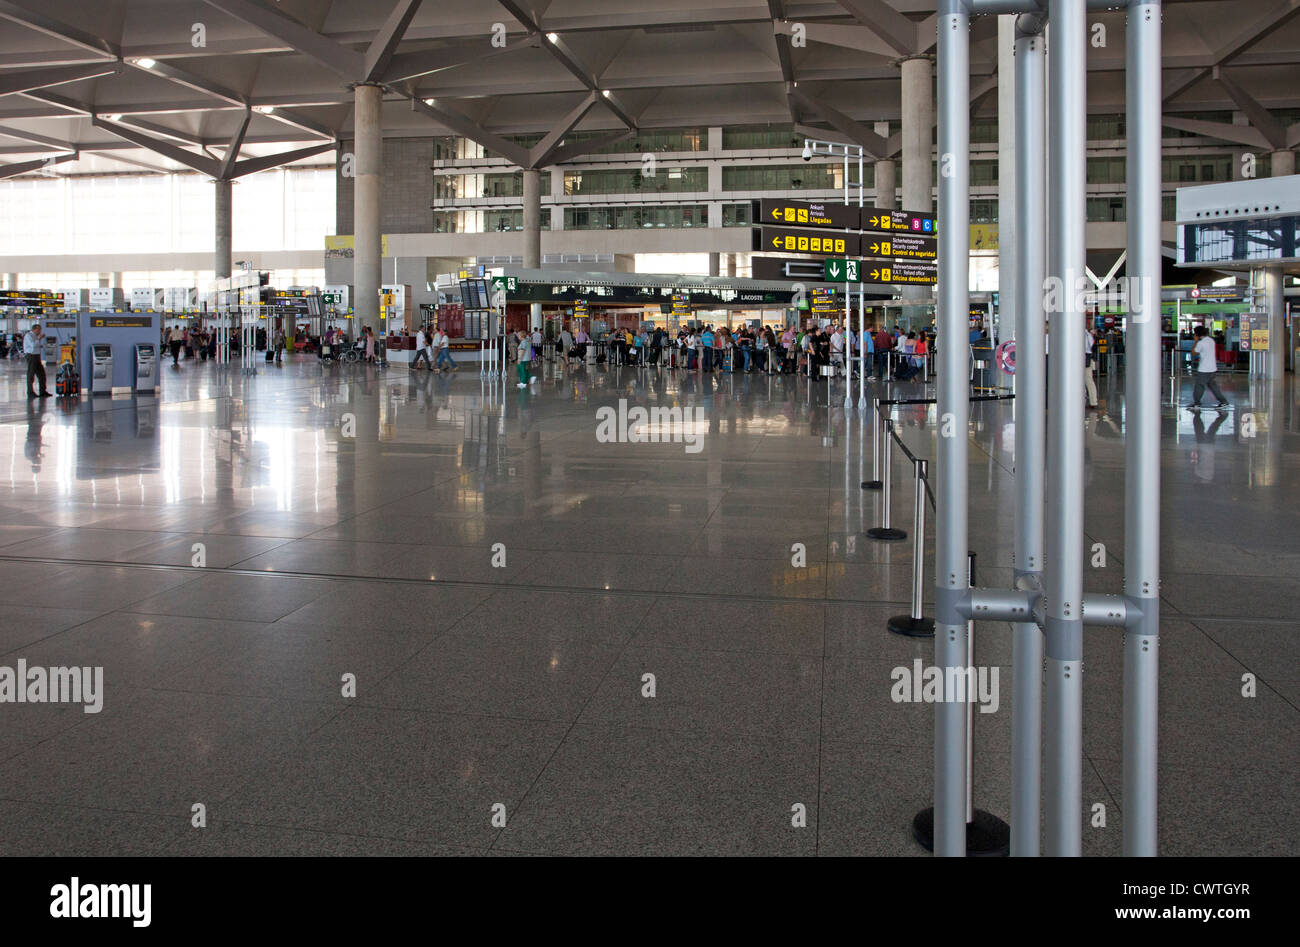 A busy airport terminal concourse with passenger queues in the background - Stock Image